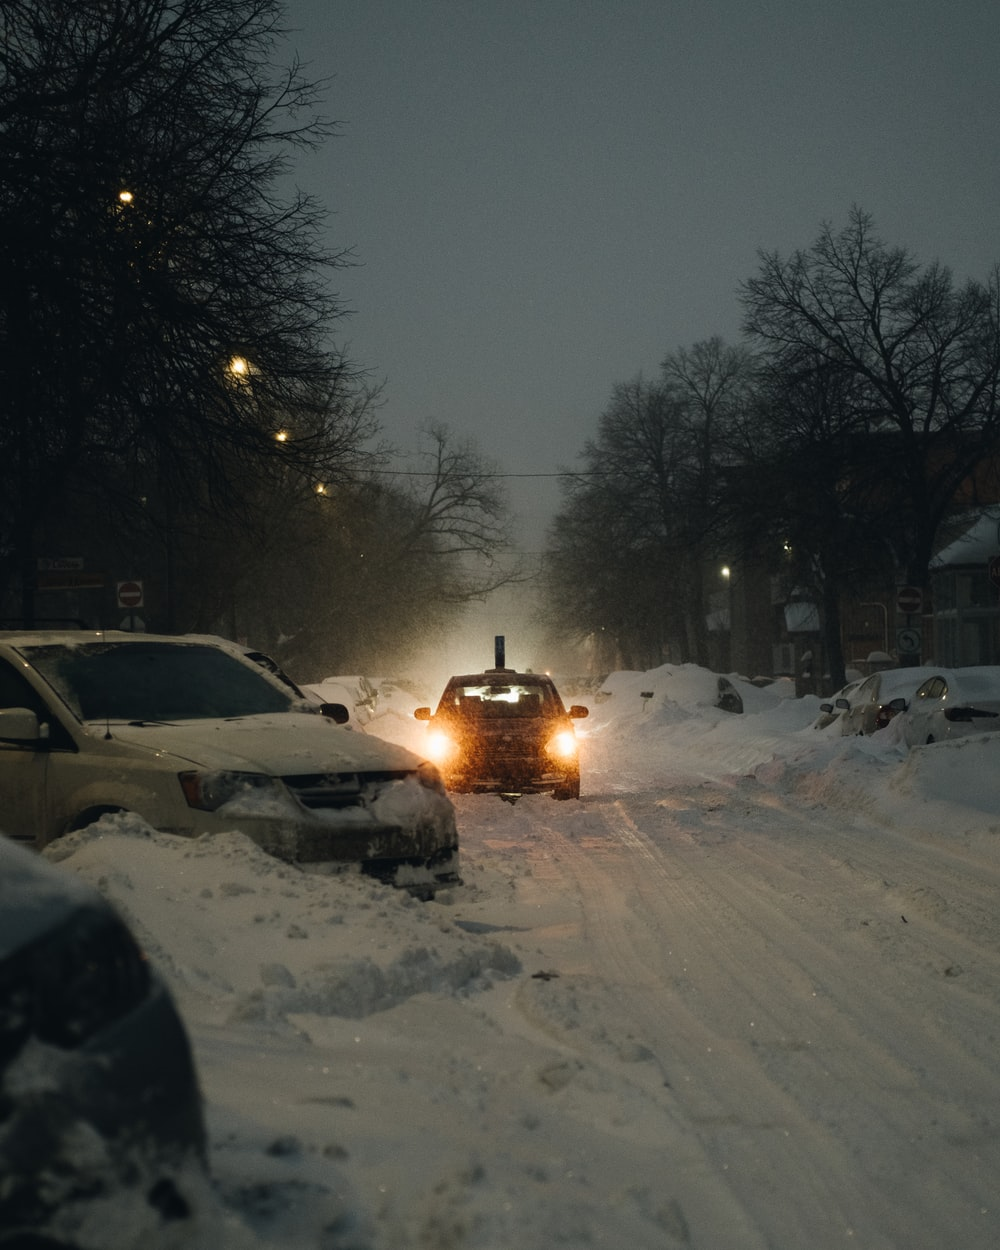 white car on snow covered road during night time